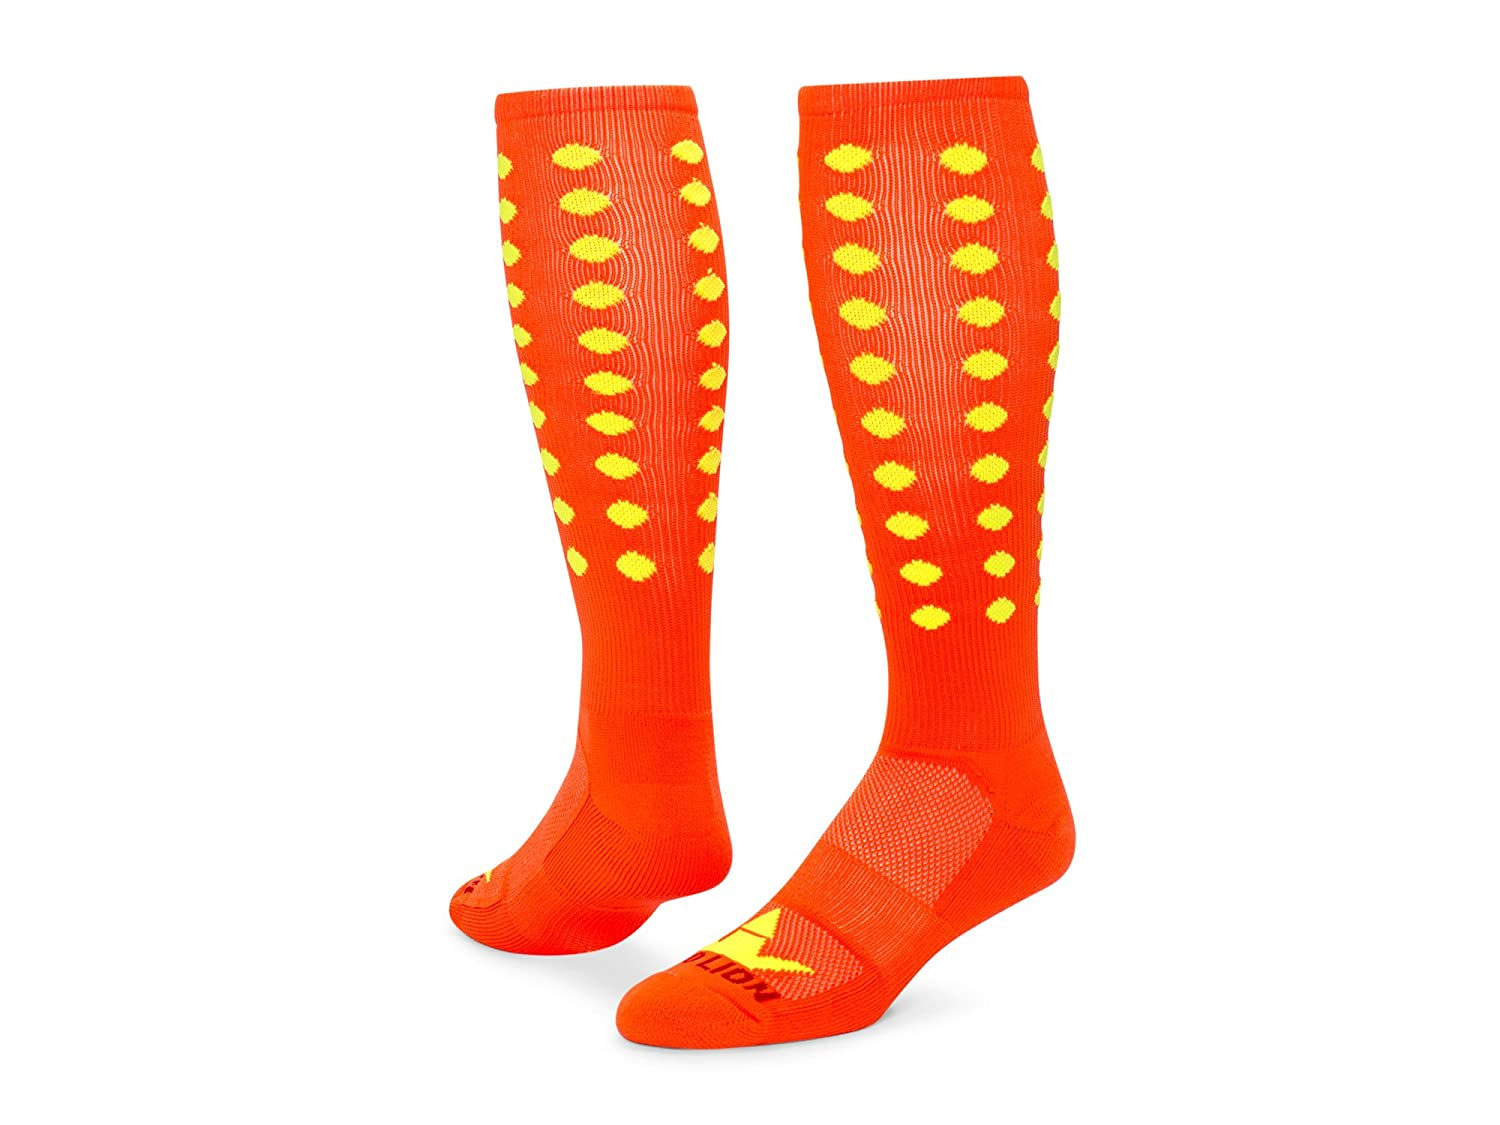 レッドライオンMini Dots Zanyパフォーマンスソックス B00HQGBQKE Medium|Neon Orange / Neon Yel Neon Orange / Neon Yel Medium